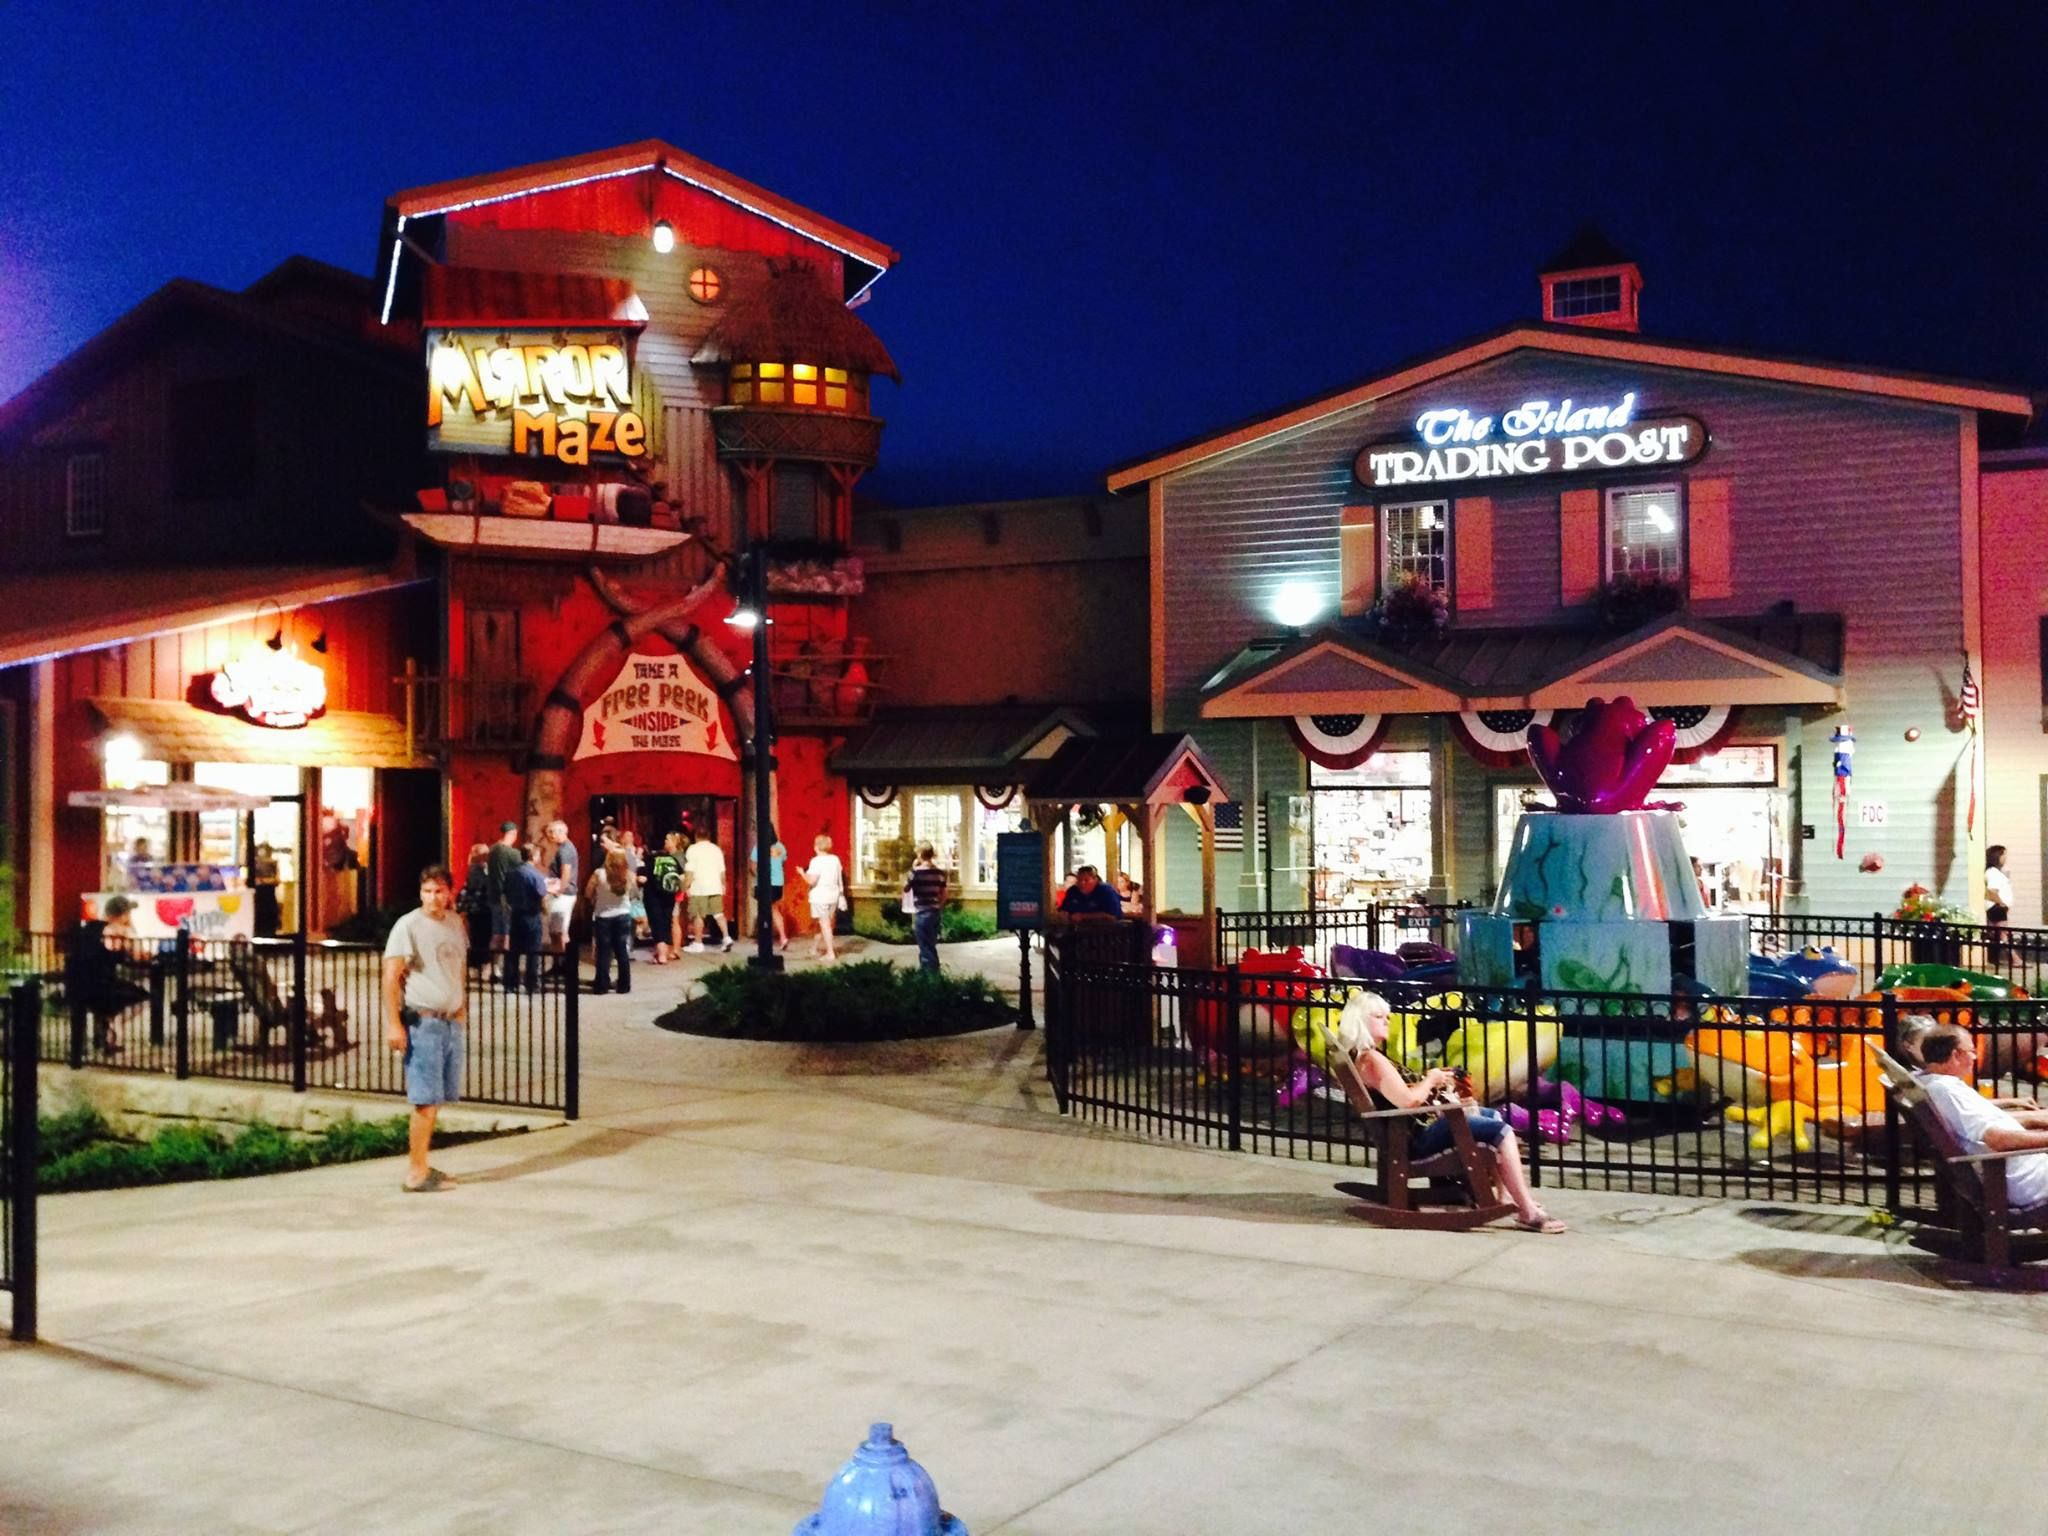 The Island In Pigeon Forge Lit Up At Night Pigeon Forge Vacation Gatlinburg Smoky Mountain Cabin Rentals